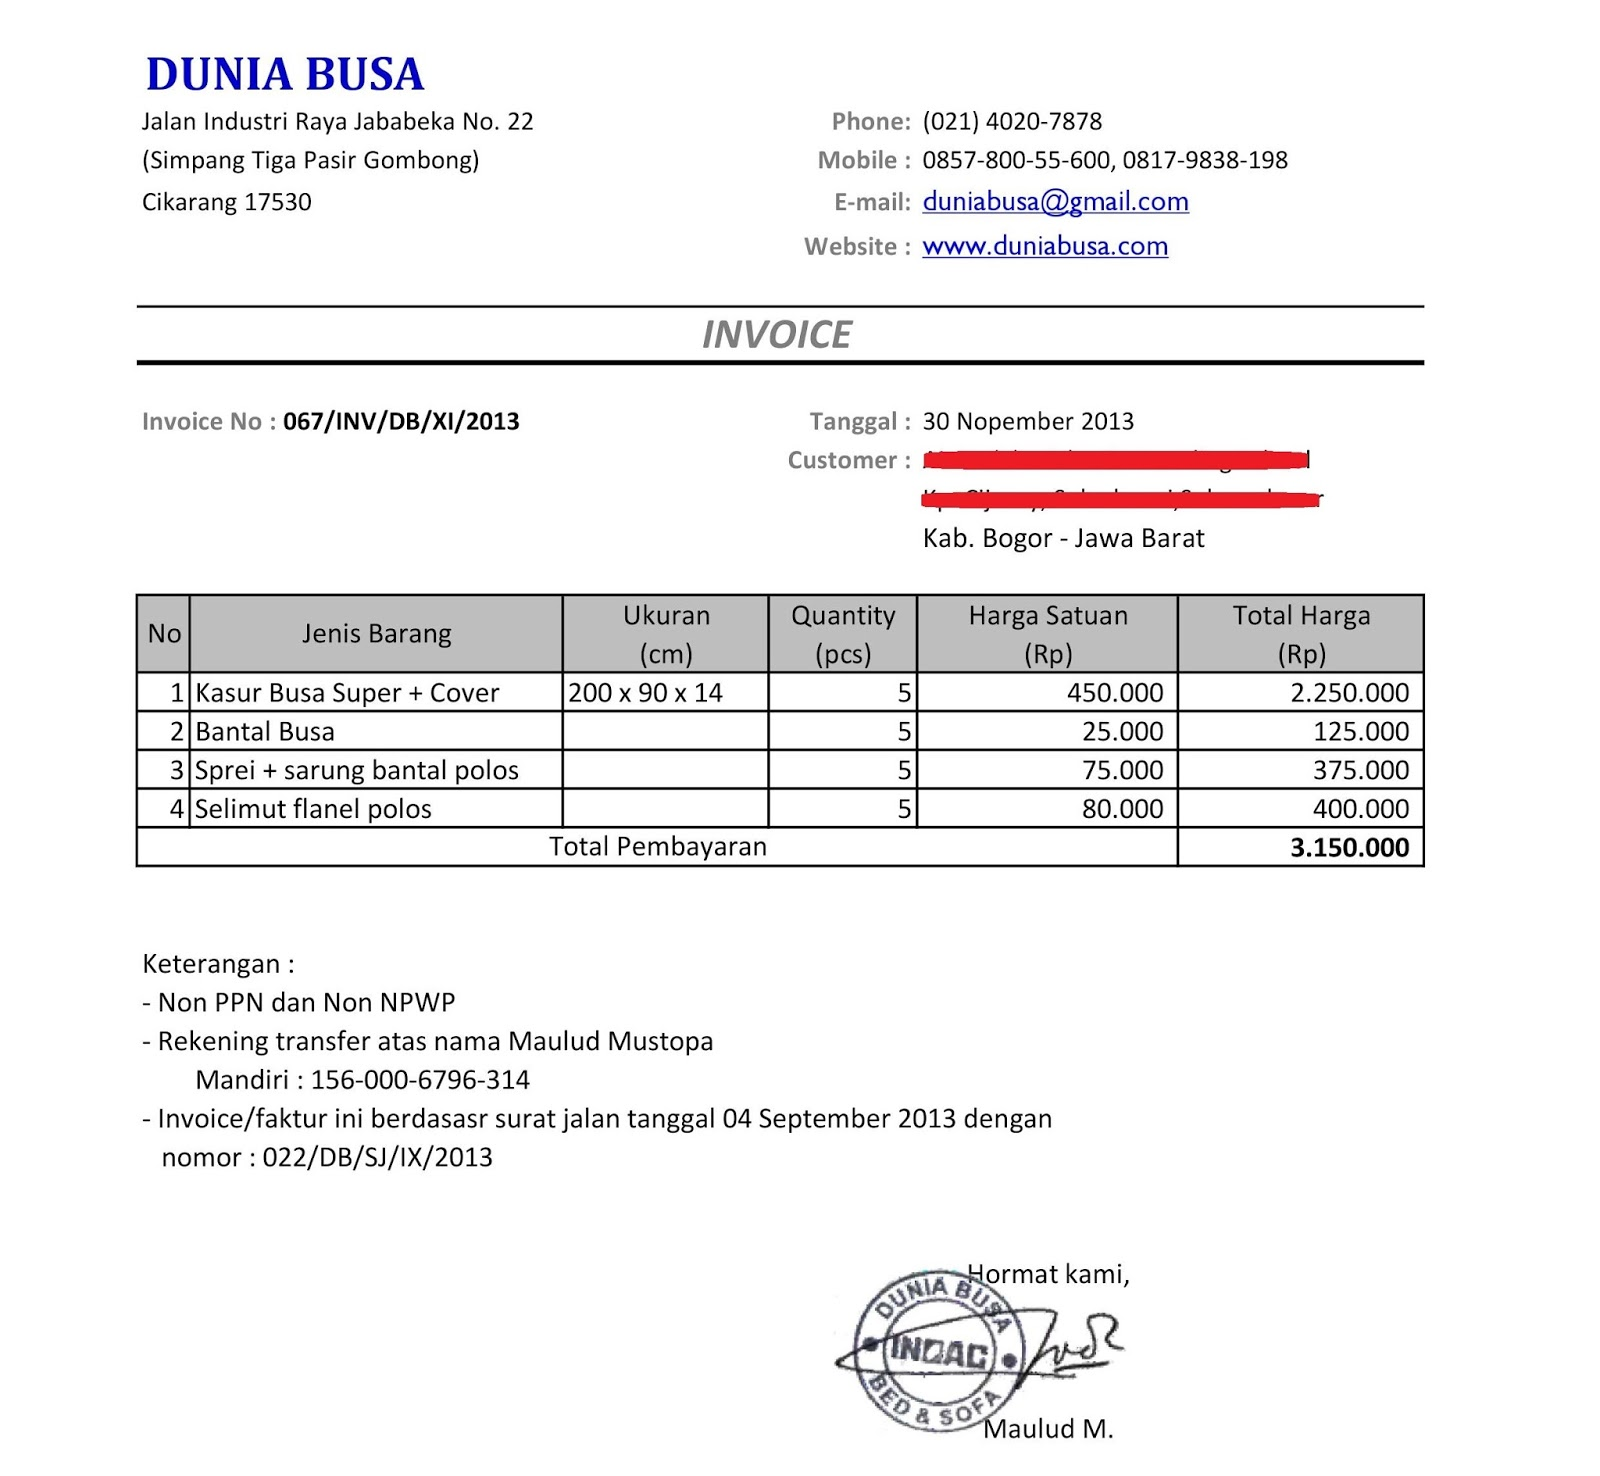 Usdgus  Picturesque Free Invoice Online  Create Invoice Online  Invoice Template  With Lovely Contoh Format Invoice Atau Surat Tagihan  Brankas Arsip  Free Invoice Online With Comely What Is Meant By Proforma Invoice Also Please Find Attached Our Invoice In Addition Against Proforma Invoice And What Is A Valid Tax Invoice As Well As Membership Invoice Template Additionally Sole Trader Invoice Template From Sklepco With Usdgus  Lovely Free Invoice Online  Create Invoice Online  Invoice Template  With Comely Contoh Format Invoice Atau Surat Tagihan  Brankas Arsip  Free Invoice Online And Picturesque What Is Meant By Proforma Invoice Also Please Find Attached Our Invoice In Addition Against Proforma Invoice From Sklepco